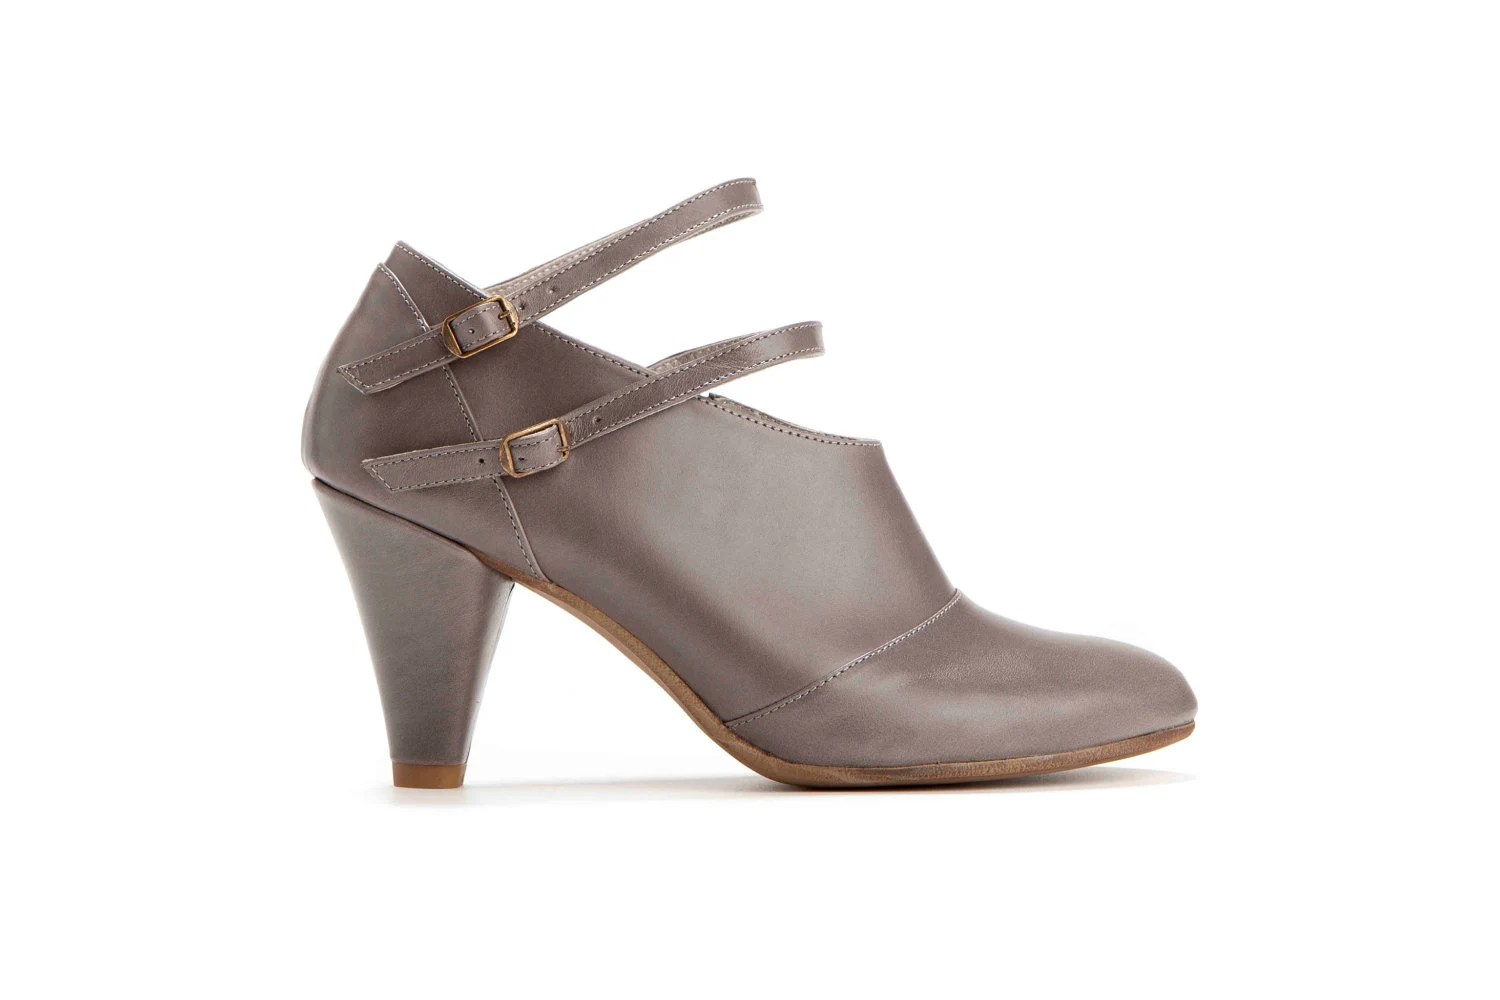 Elegant Heels // Winter Pumps // Clearance 50% Discount // Womens Gray High Heel Shoes with Ankle Straps - OliveThomasShoes